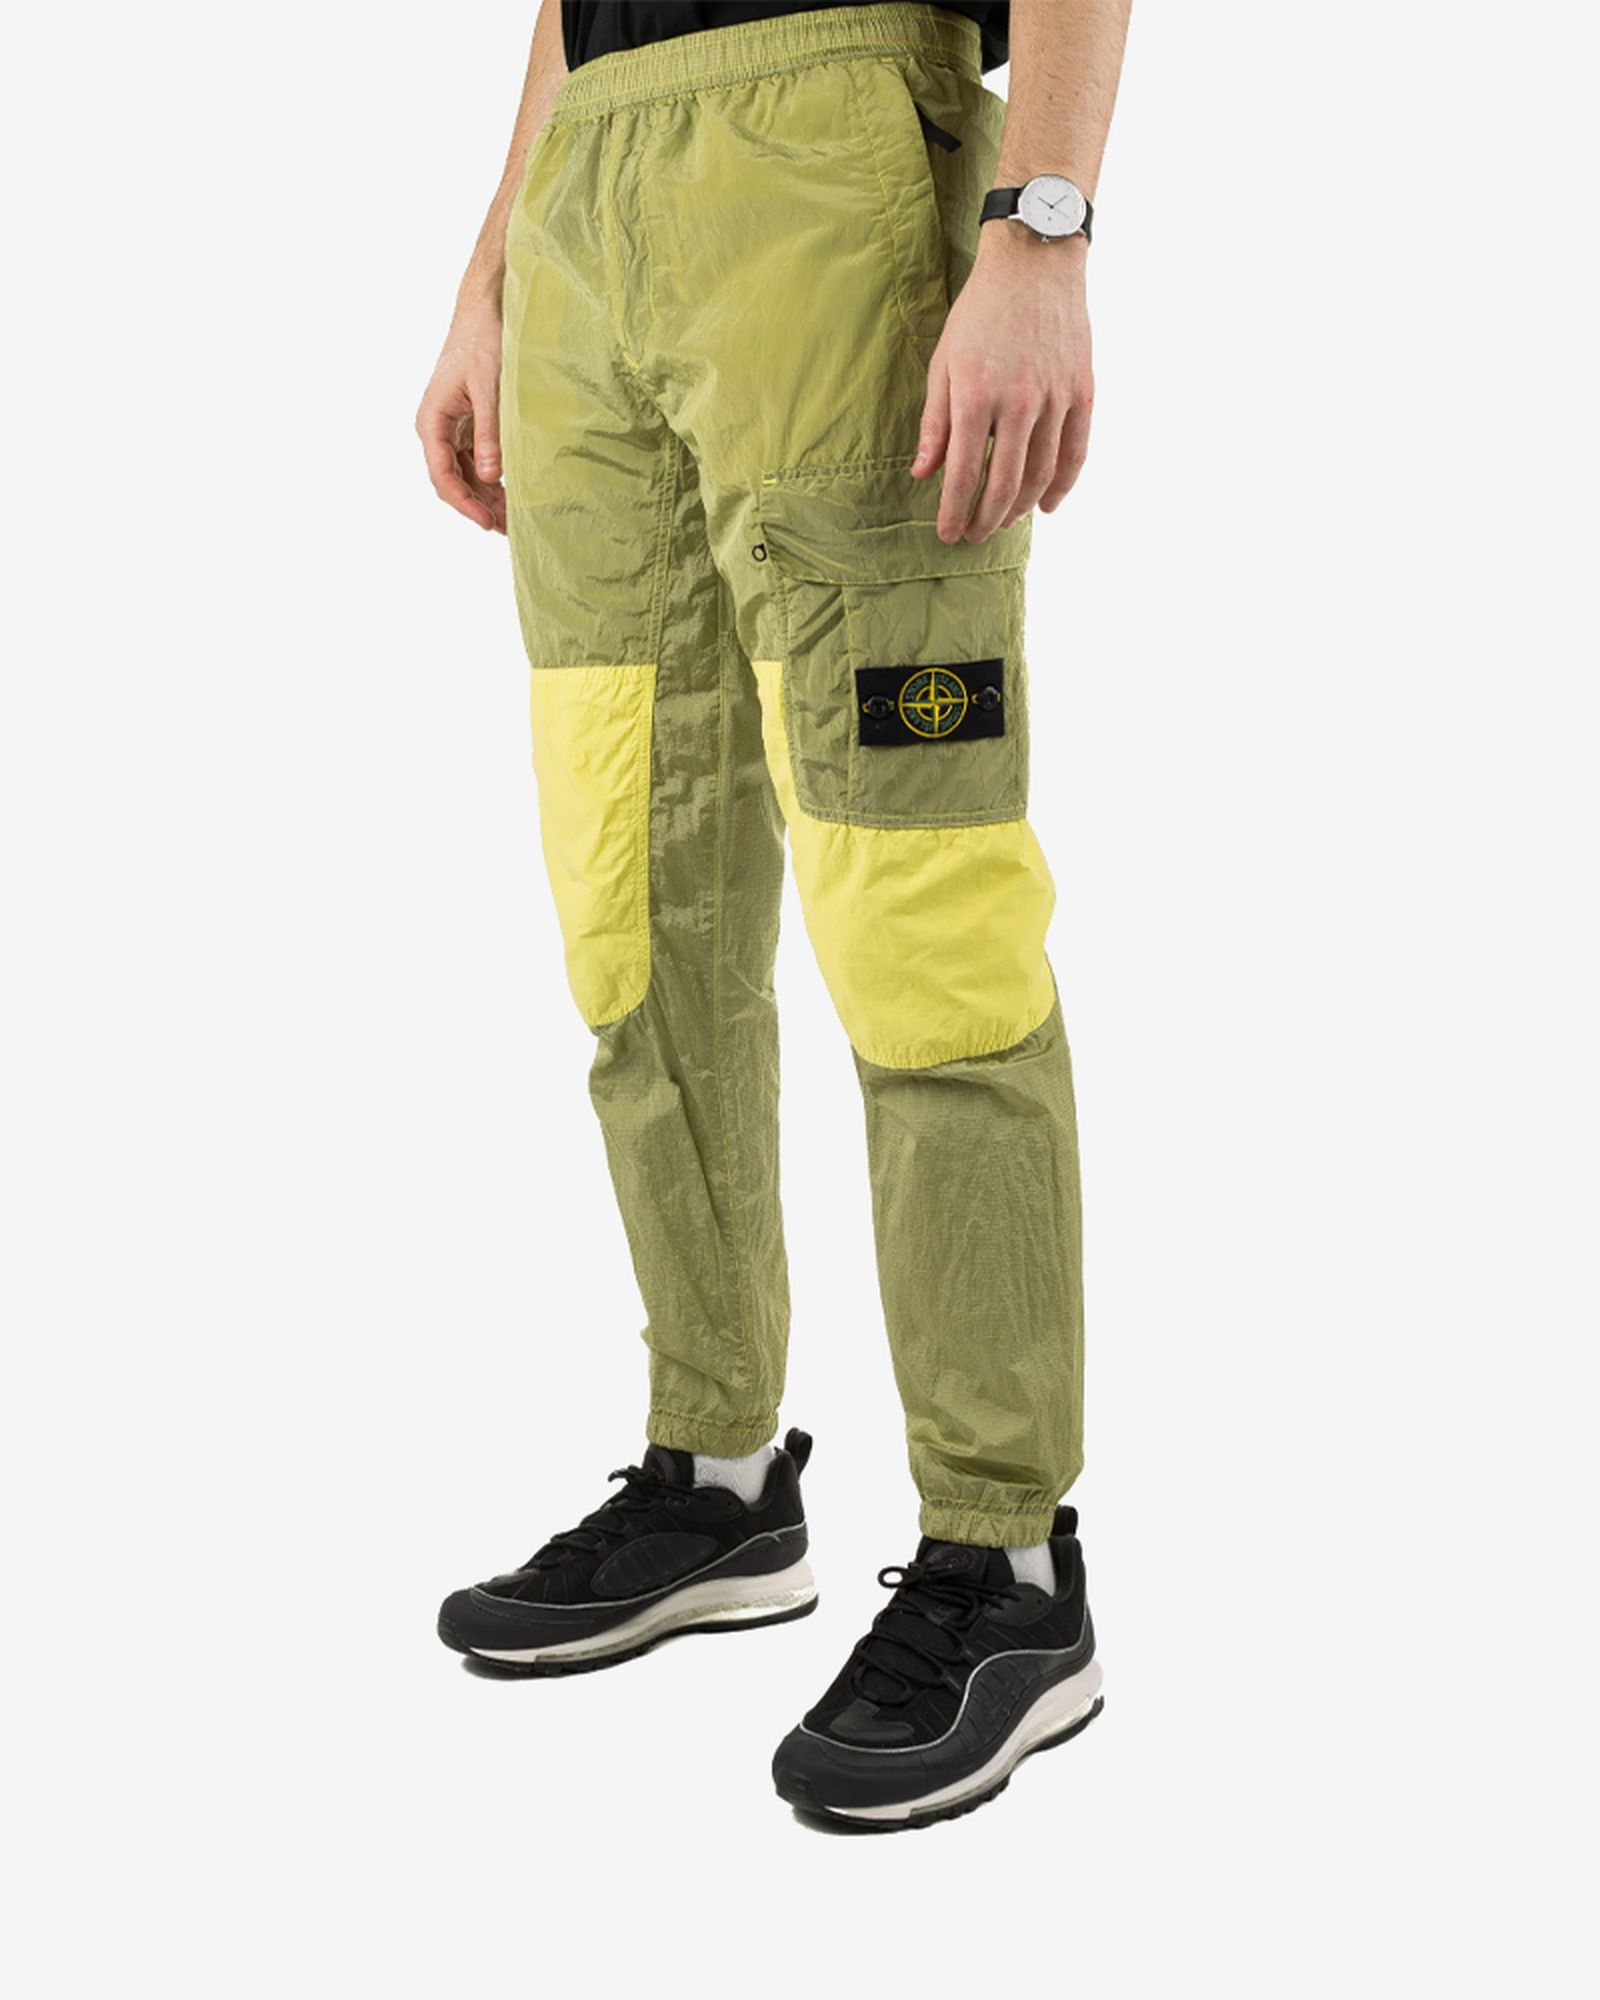 buyers guide brands catering disabilities Stone Island apple dining with dignity